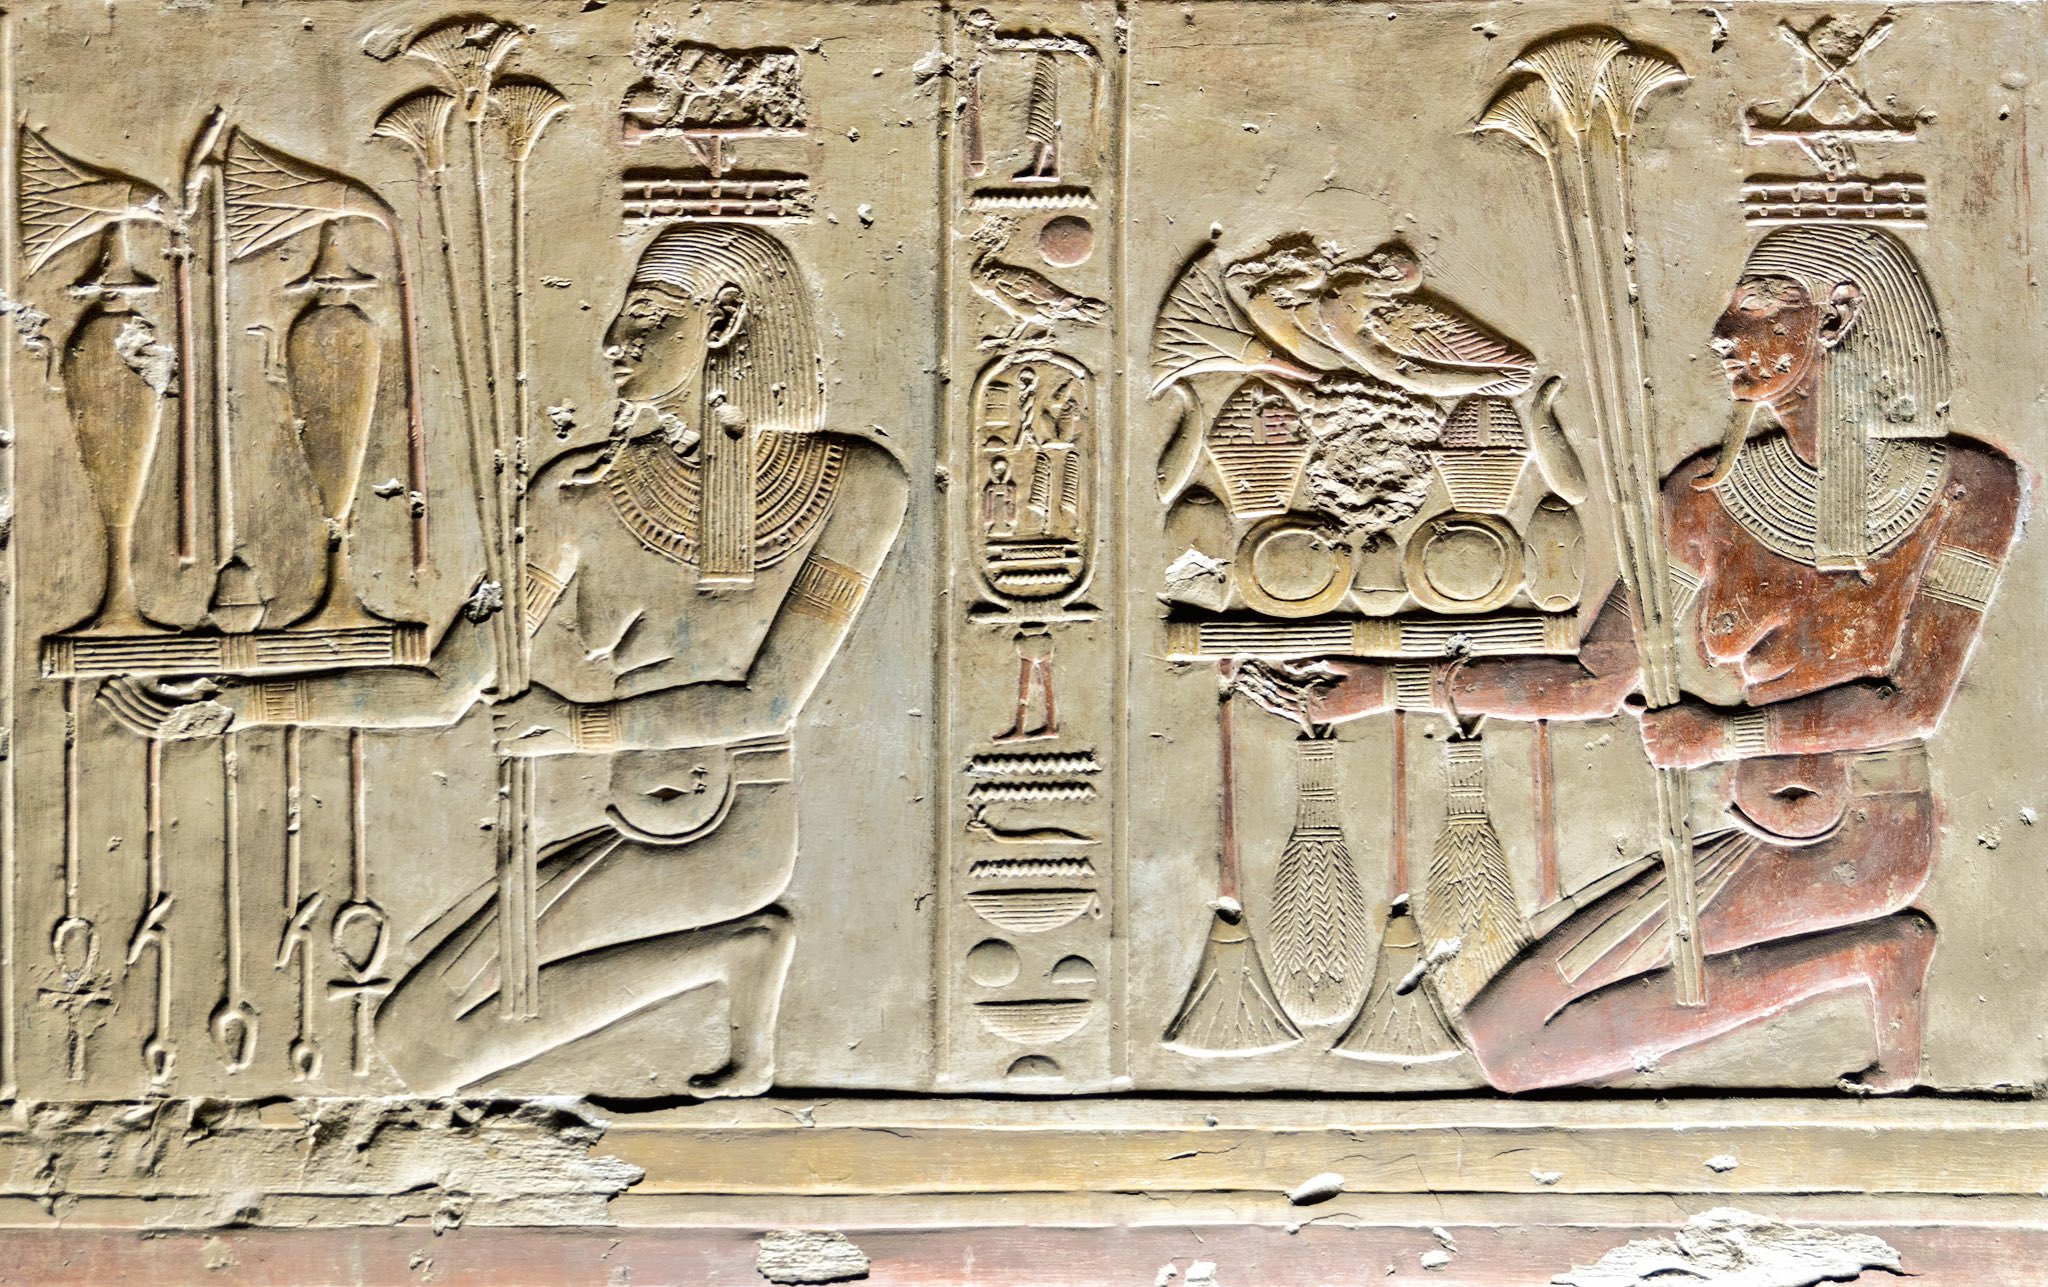 From The Temple Of #Seti I. #Abydos, #Egypt | #AncientEgypt #Egyptology #Archaeology https://t.co/g75AlXDcfq